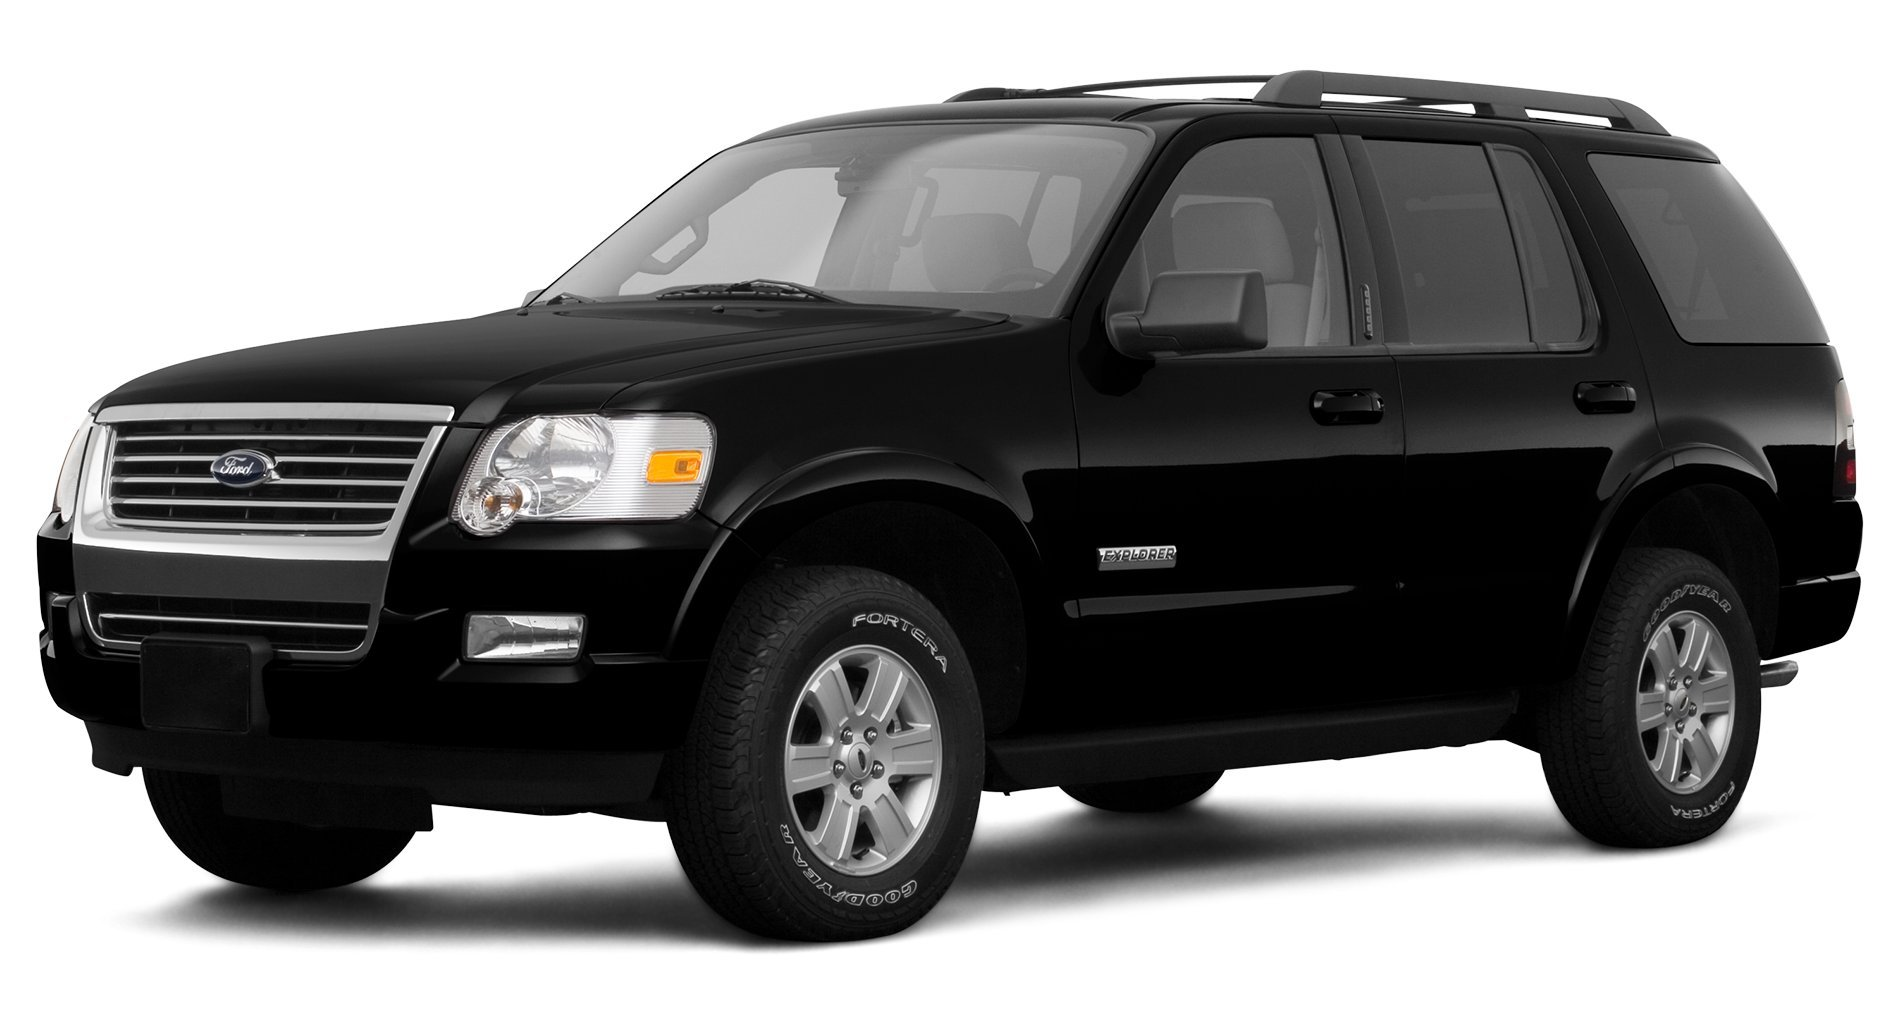 Amazon 2008 Nissan Xterra Reviews and Specs Vehicles